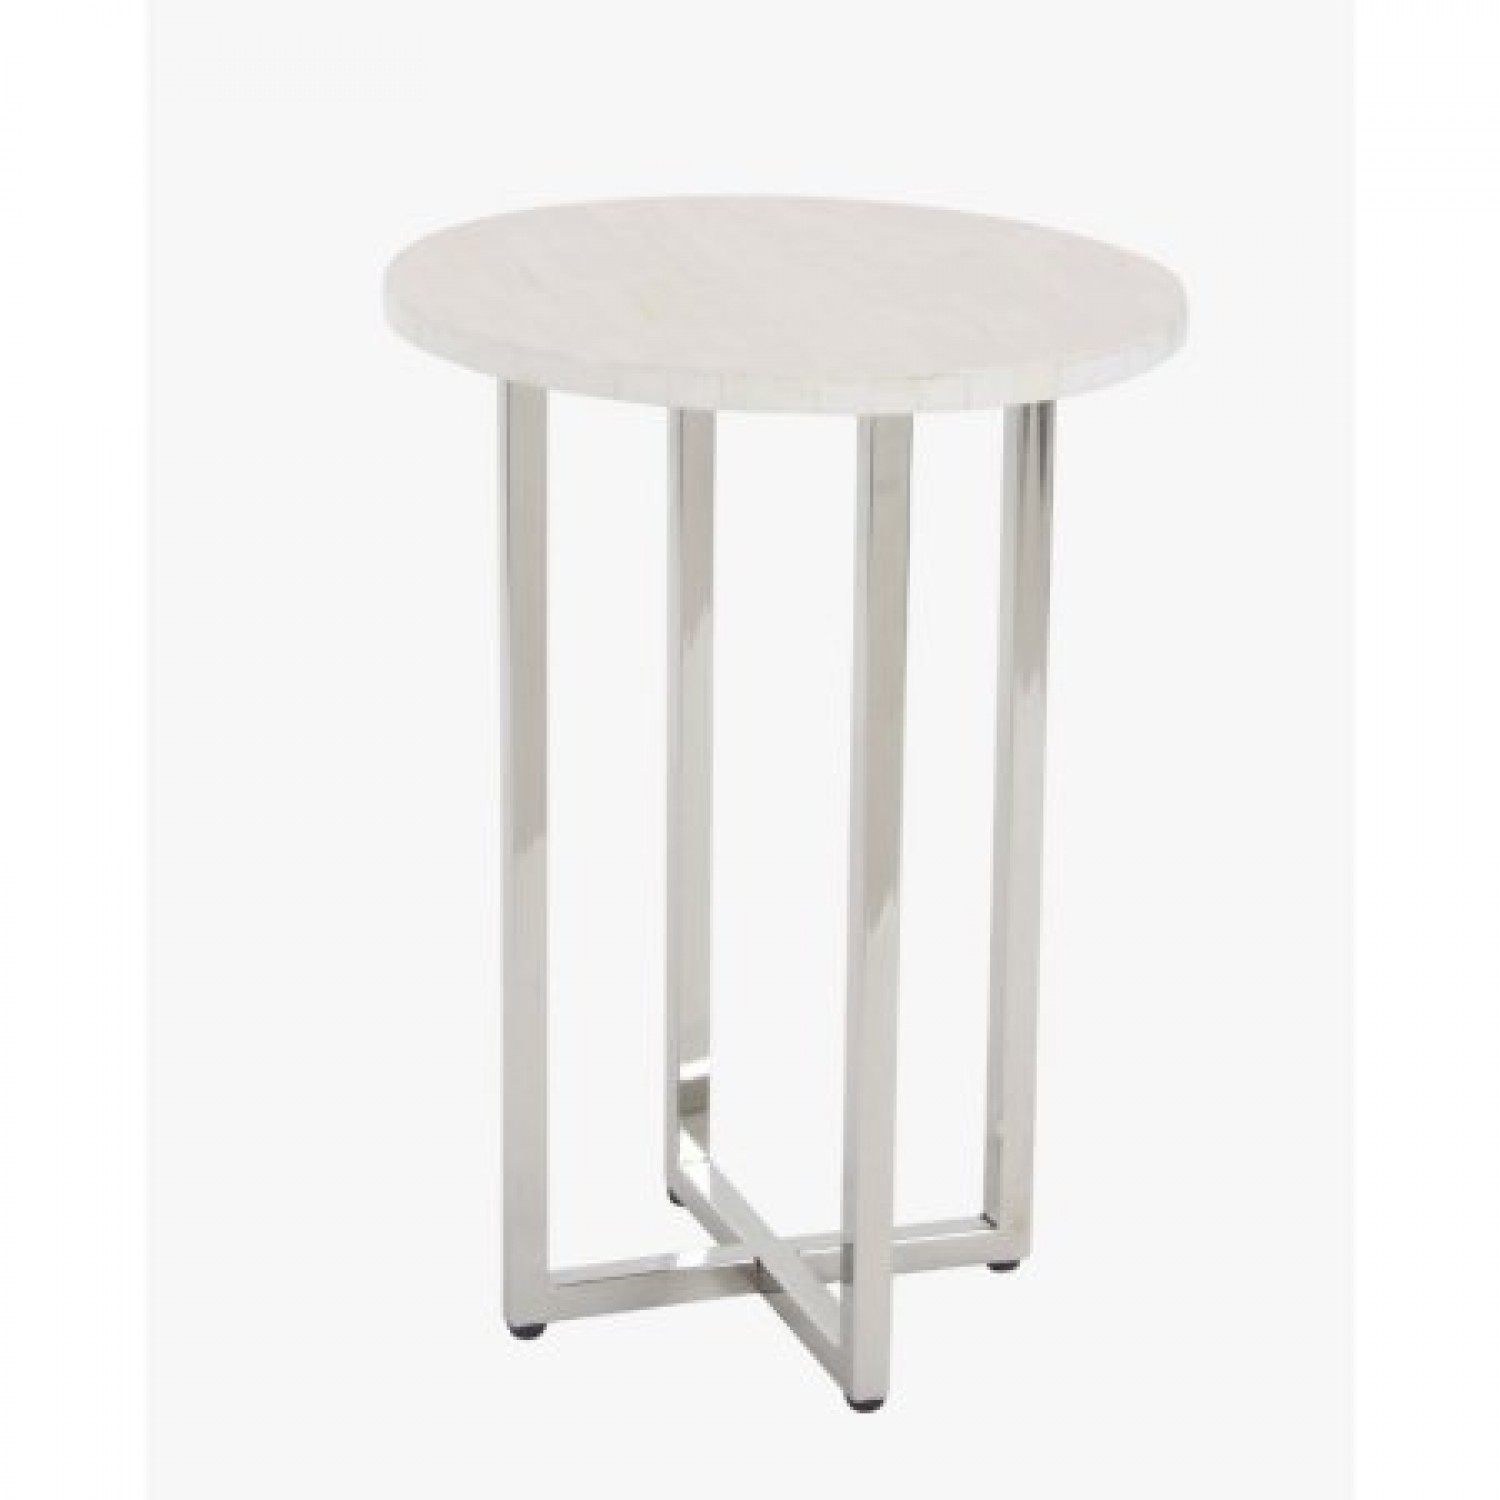 decmode modern inch white polystone round accent table enticing stainless steel tree lamp bedside tray hobby lobby furniture small dining room sets wine cabinet wicker dorm fish